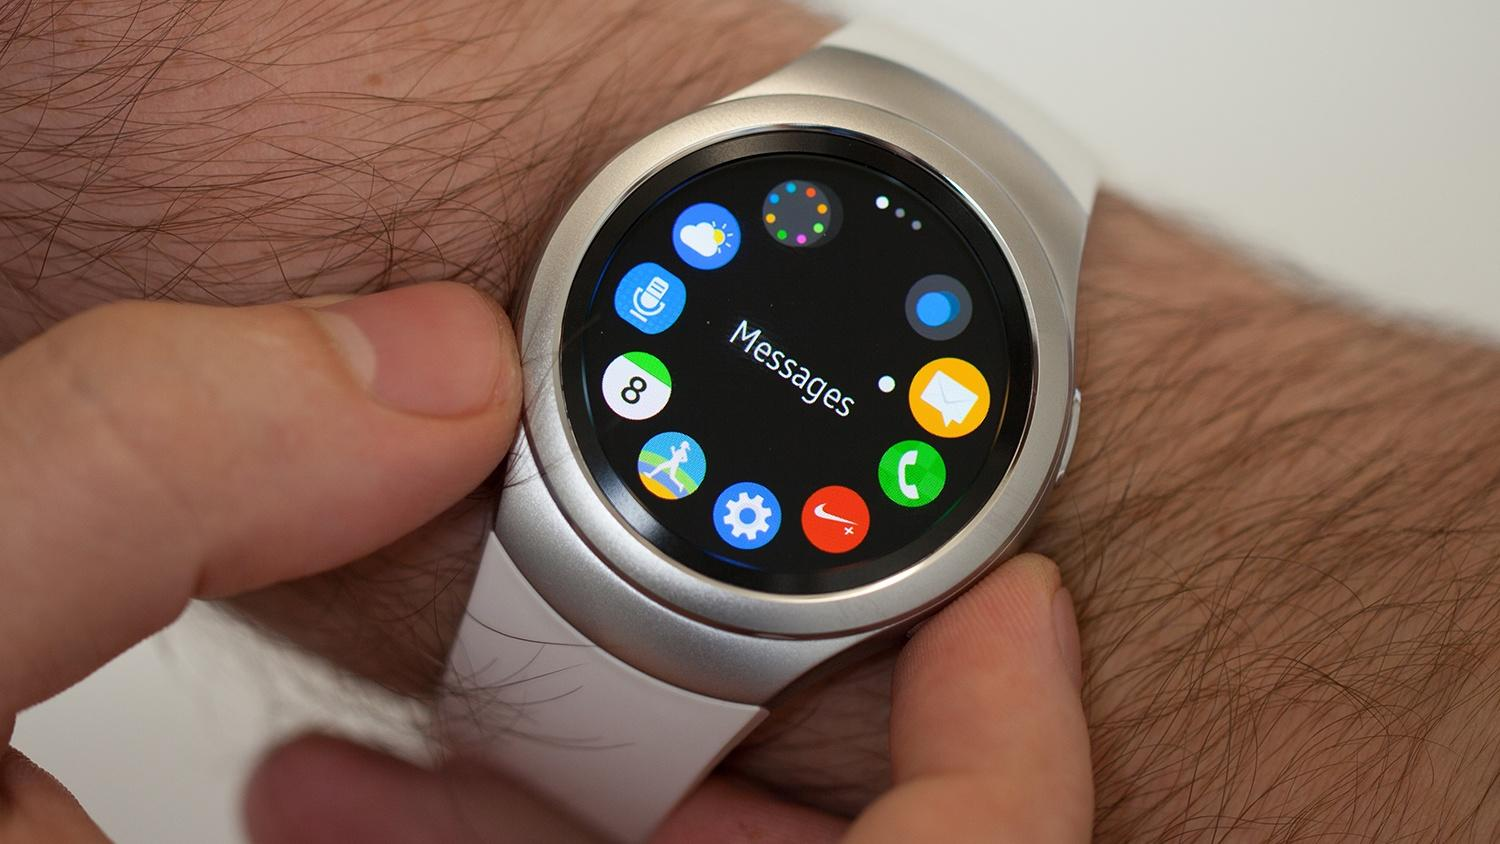 Samsung smartwatch sales are up 'several hundred percent' compared to last year